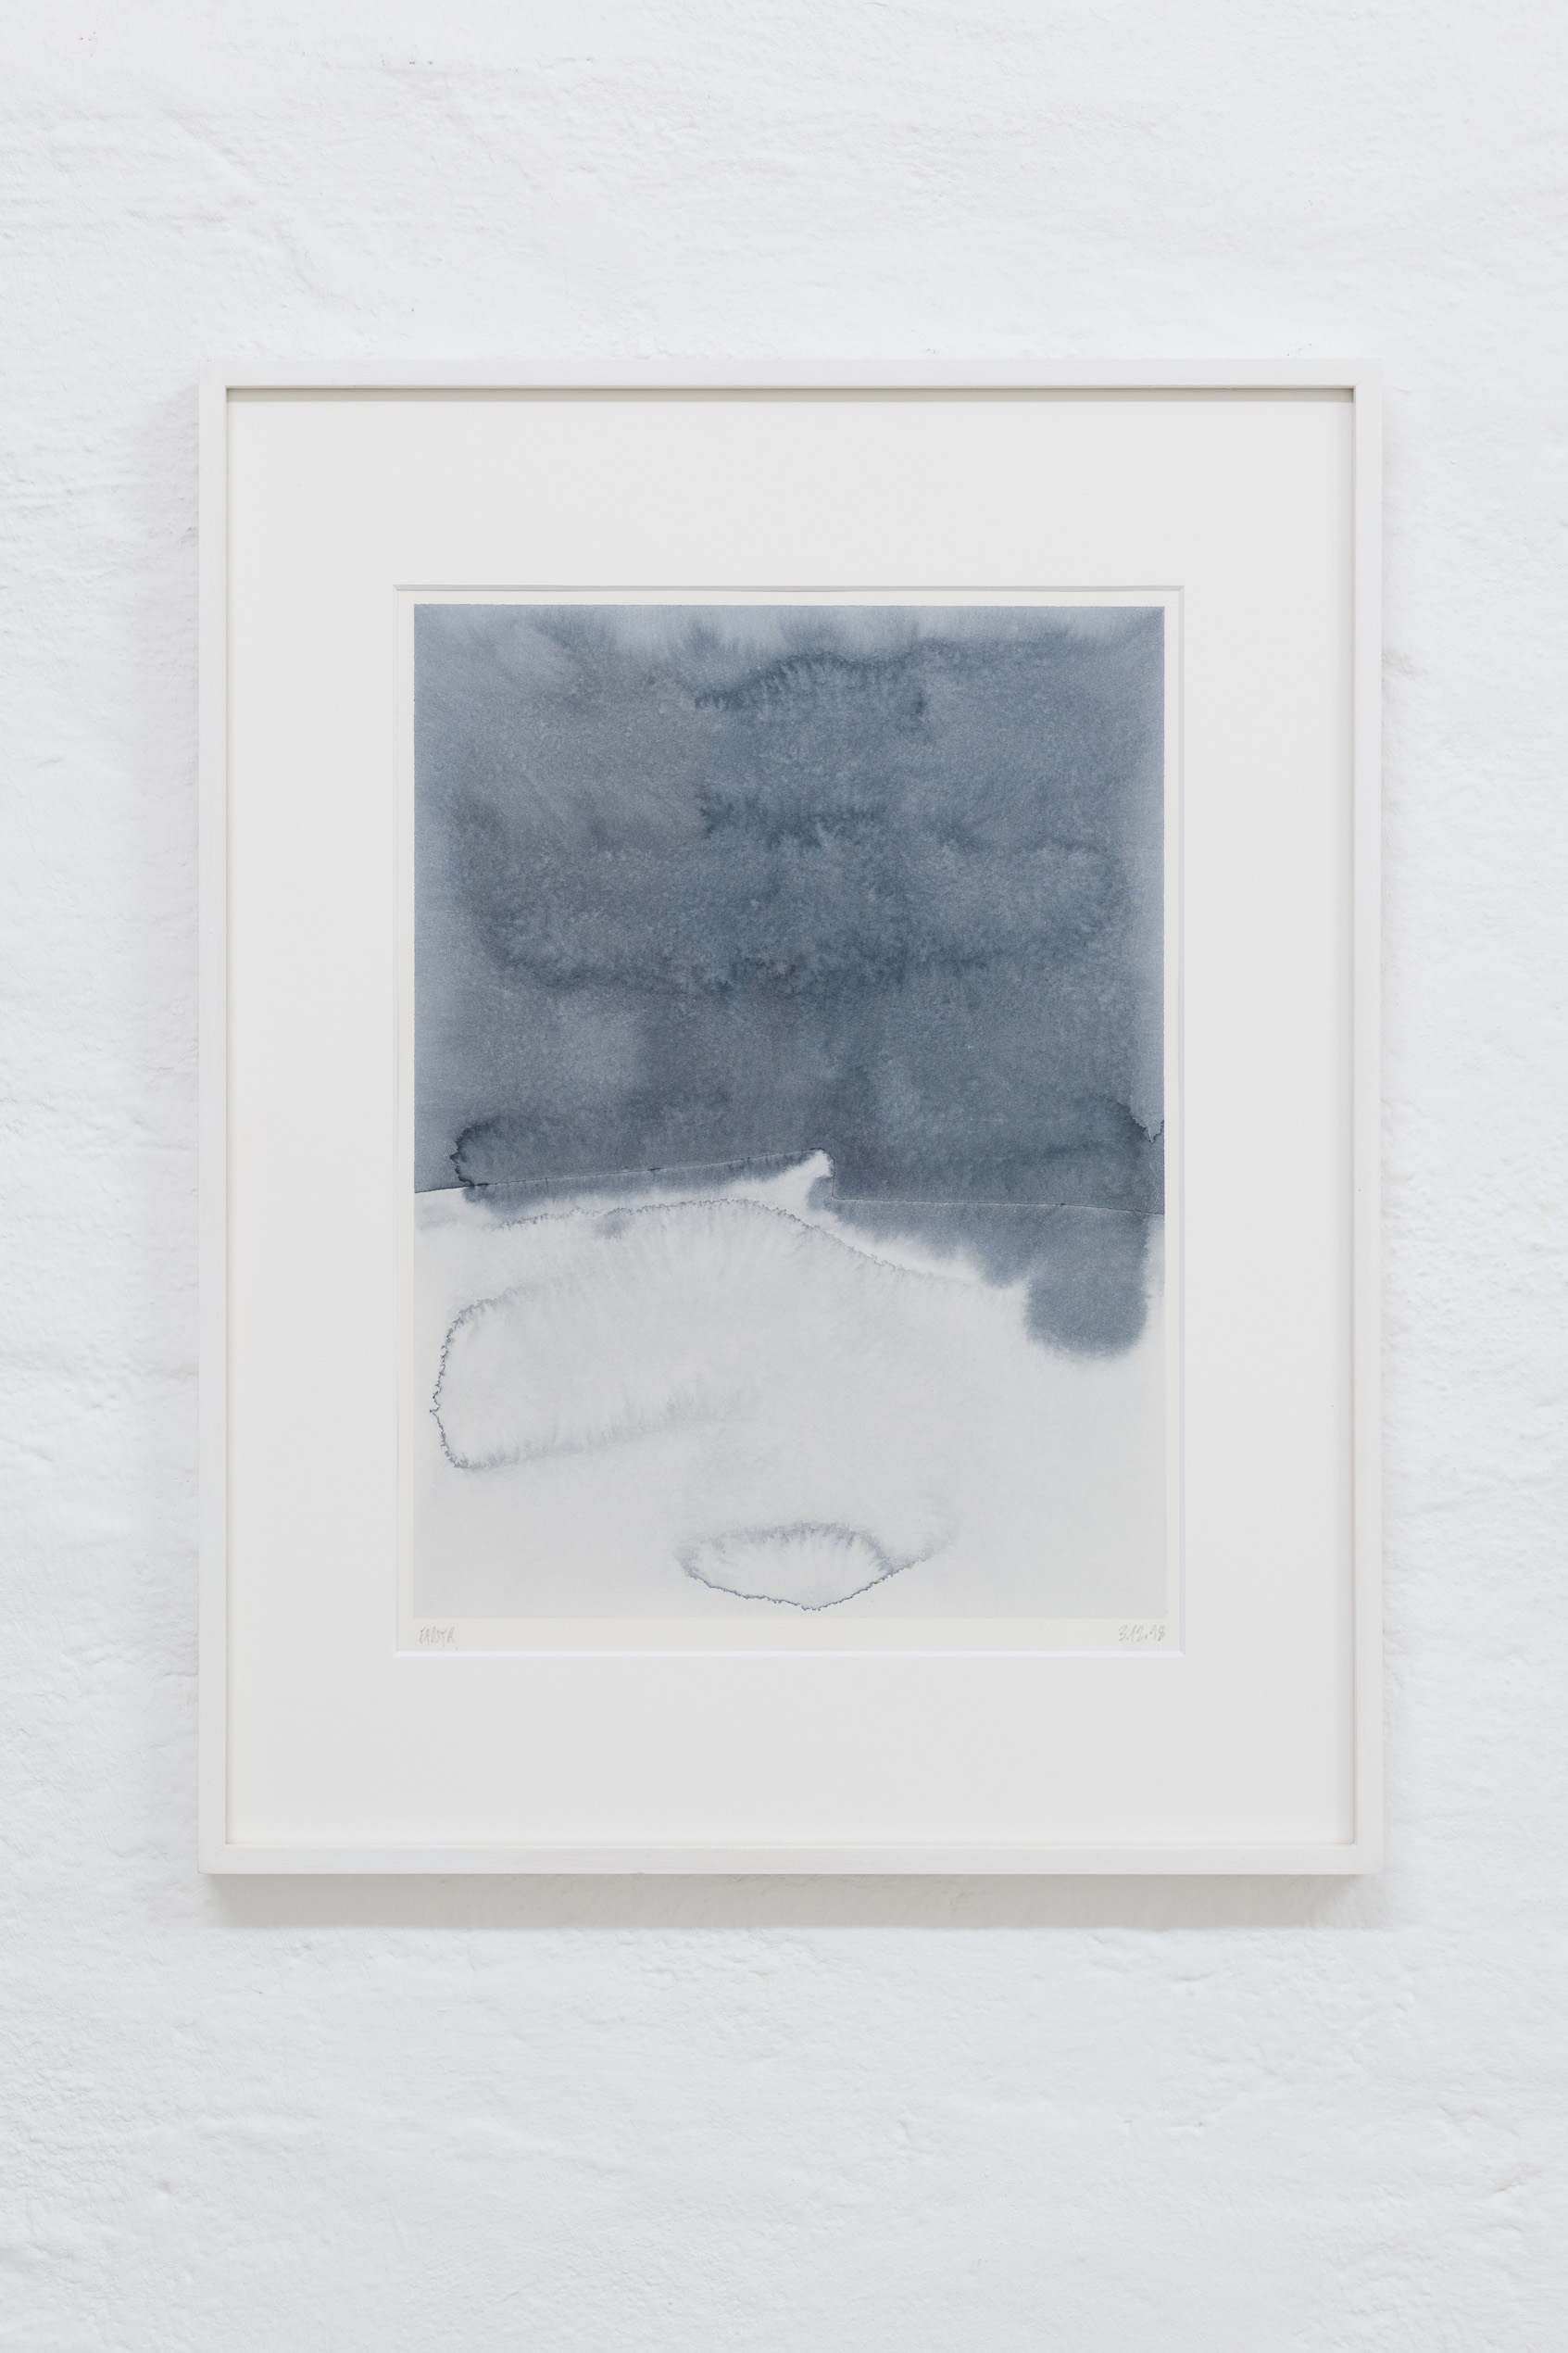 Michael Fanta, just a bruise, 2018, Watercolor on paper